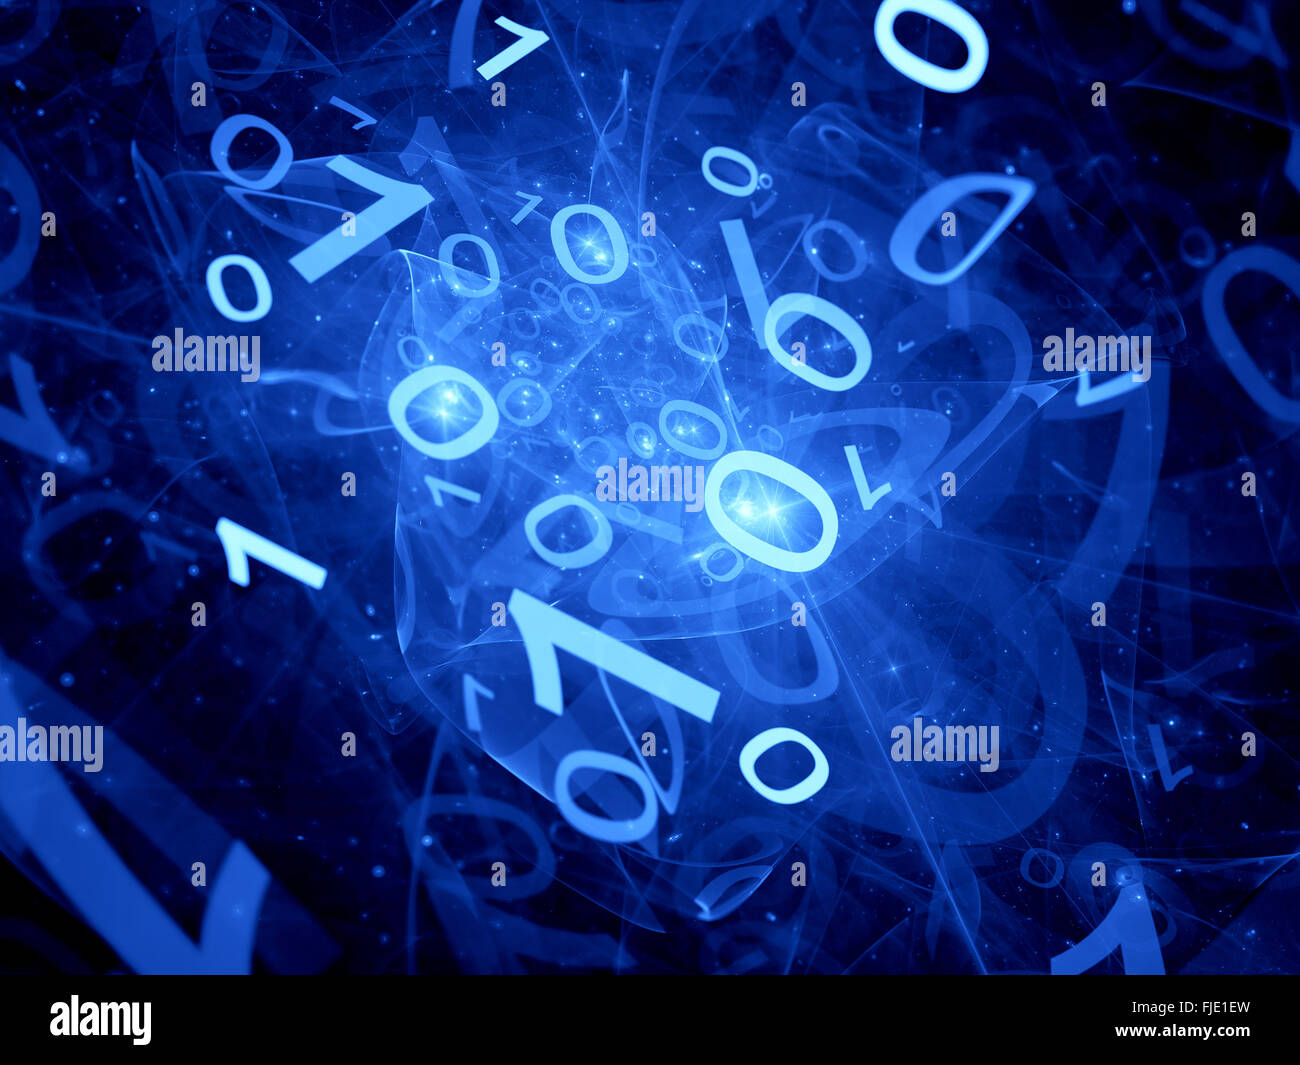 Big data glowing binary flow in space, computer generated abstract background - Stock Image